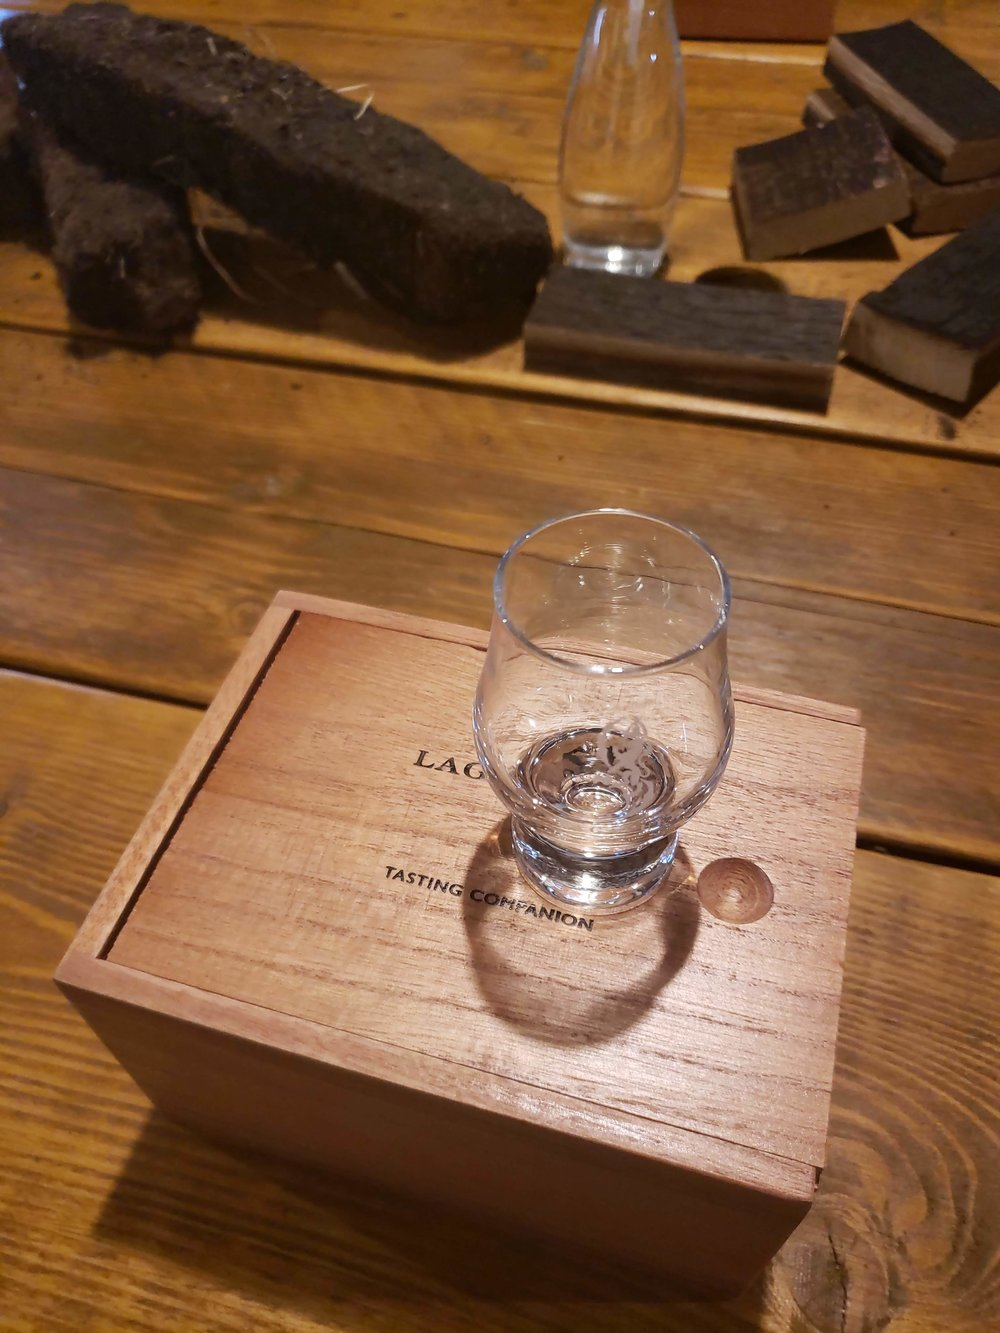 The set came with a very classy wooden box and an adorable, tiny Glencarin